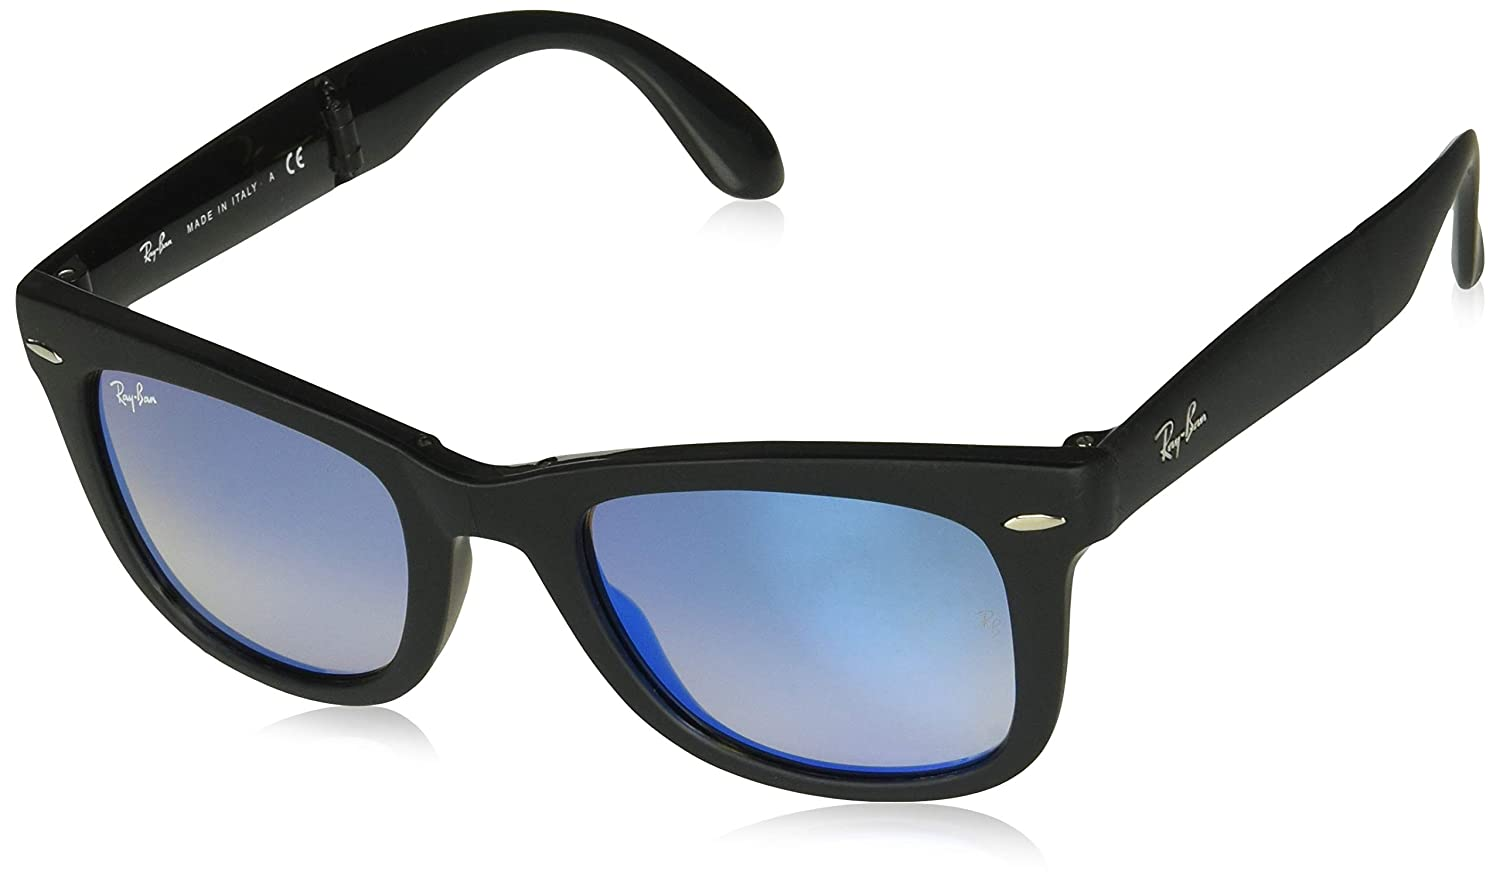 b9642b82801 Amazon.com  Ray-Ban Men s Folding Wayfarer Sunglasses